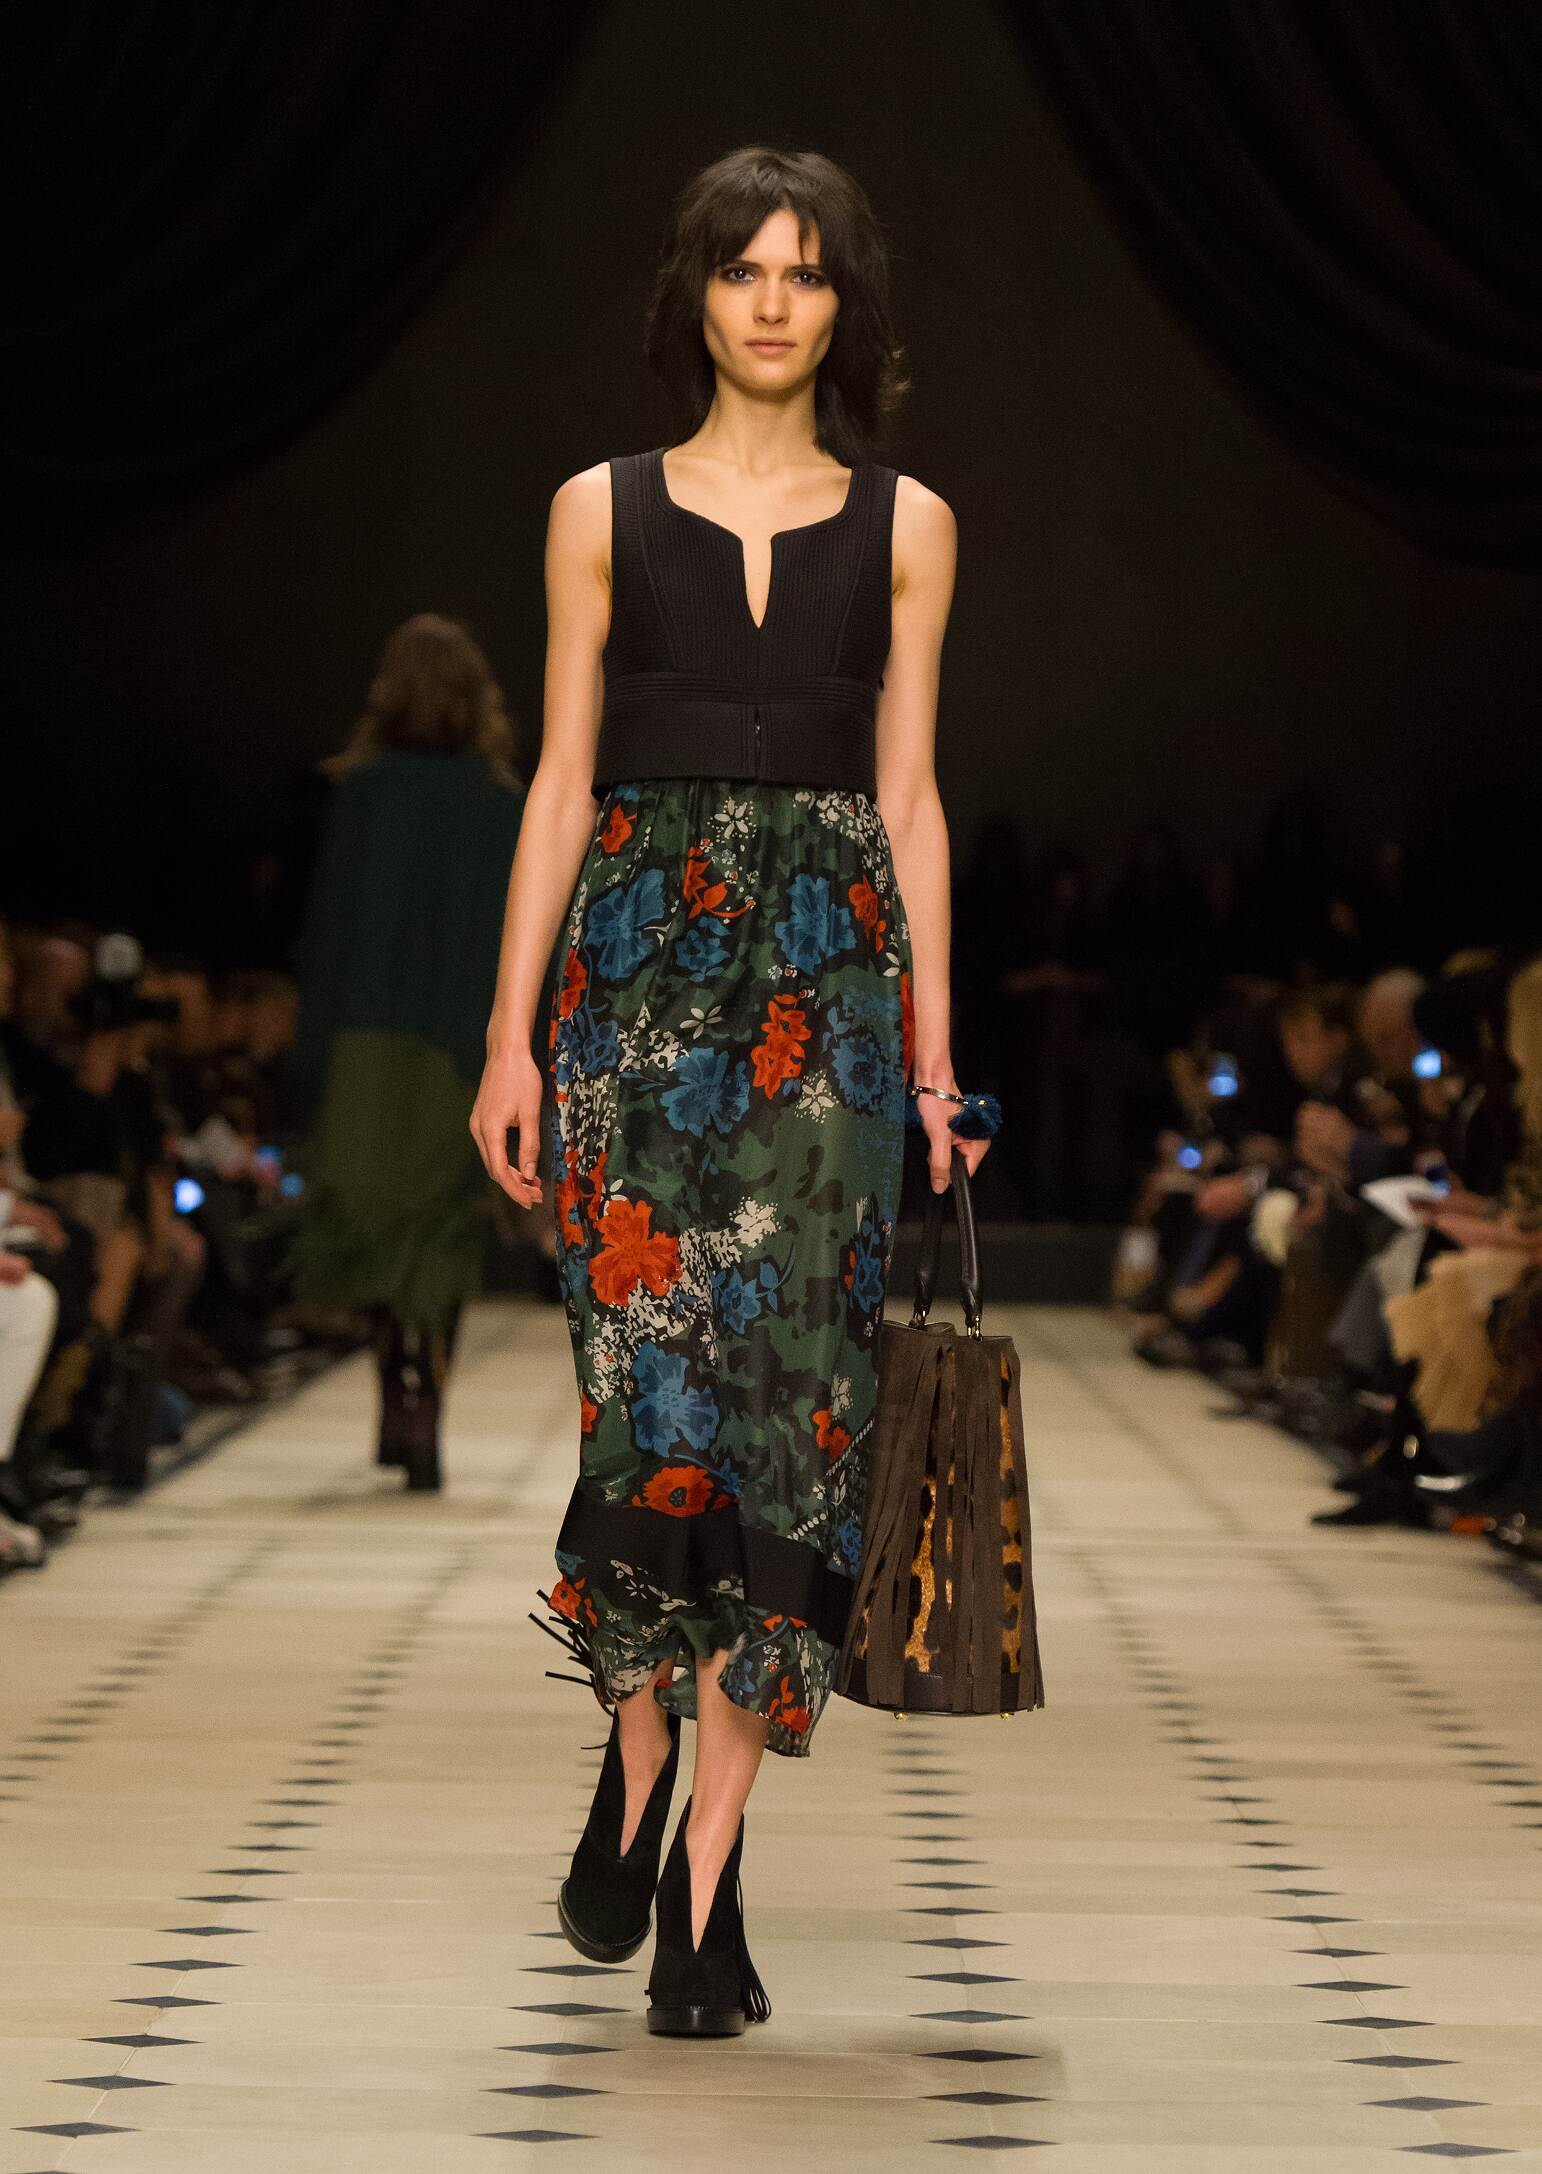 Fashion Woman Model Burberry Prorsum Collection Catwalk